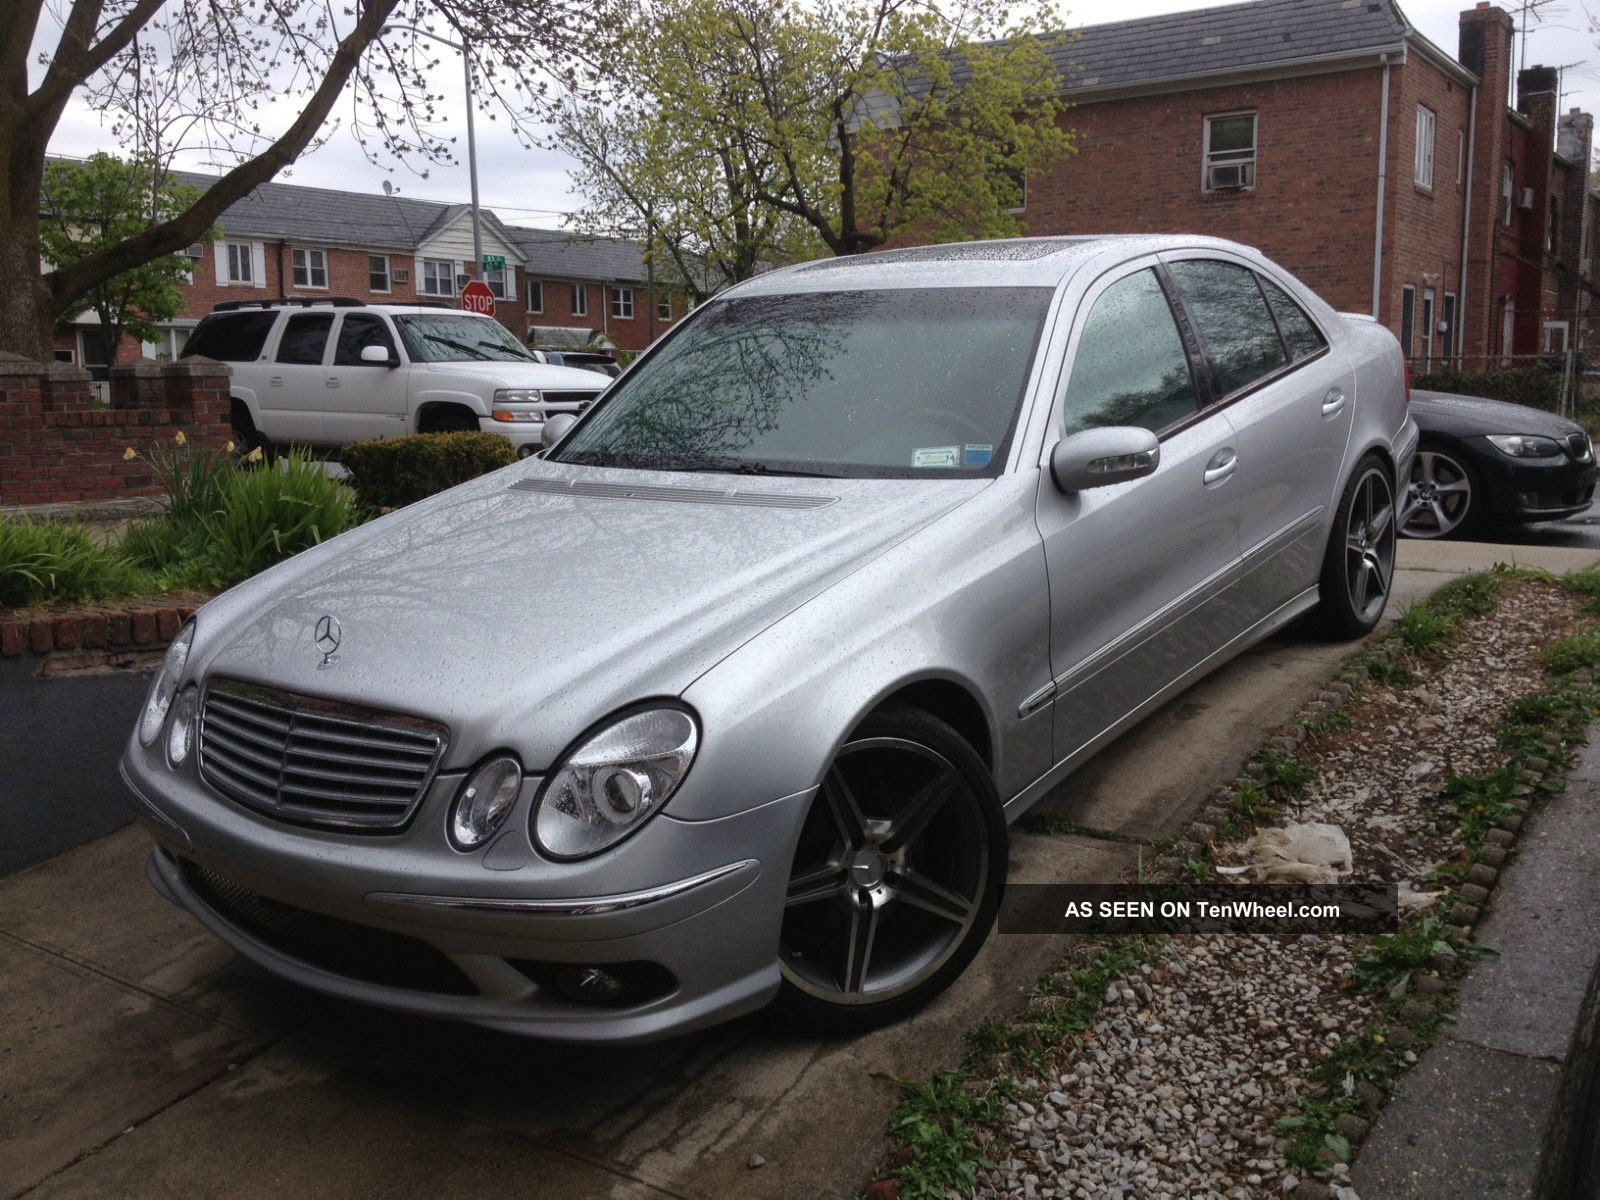 2005 Mercedes E500 / / Amg Top Of The Line,